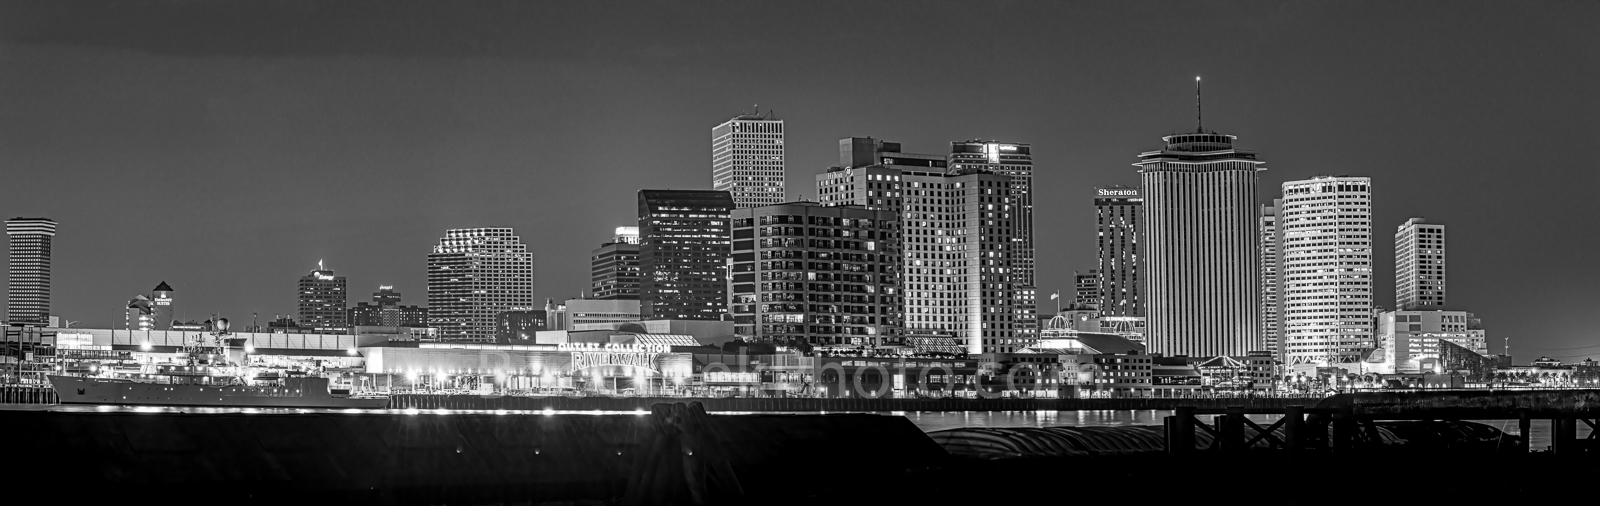 New Orleans Skyline in Black and White -New Orleans skyline pano in black and whiteafter dark with the high rise...